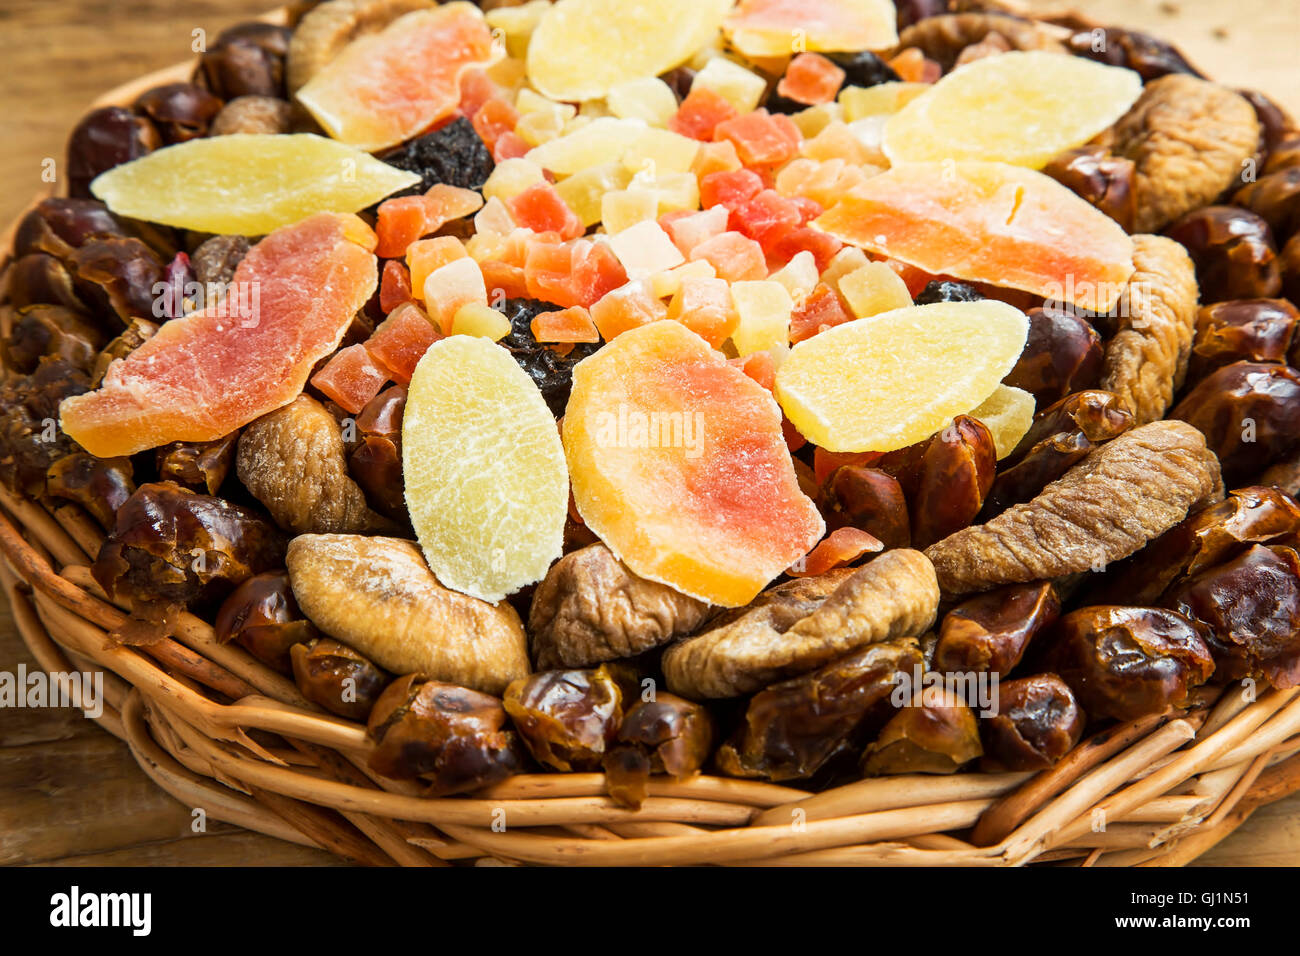 Dried and candied fruits assortment in a wicker tray - Stock Image